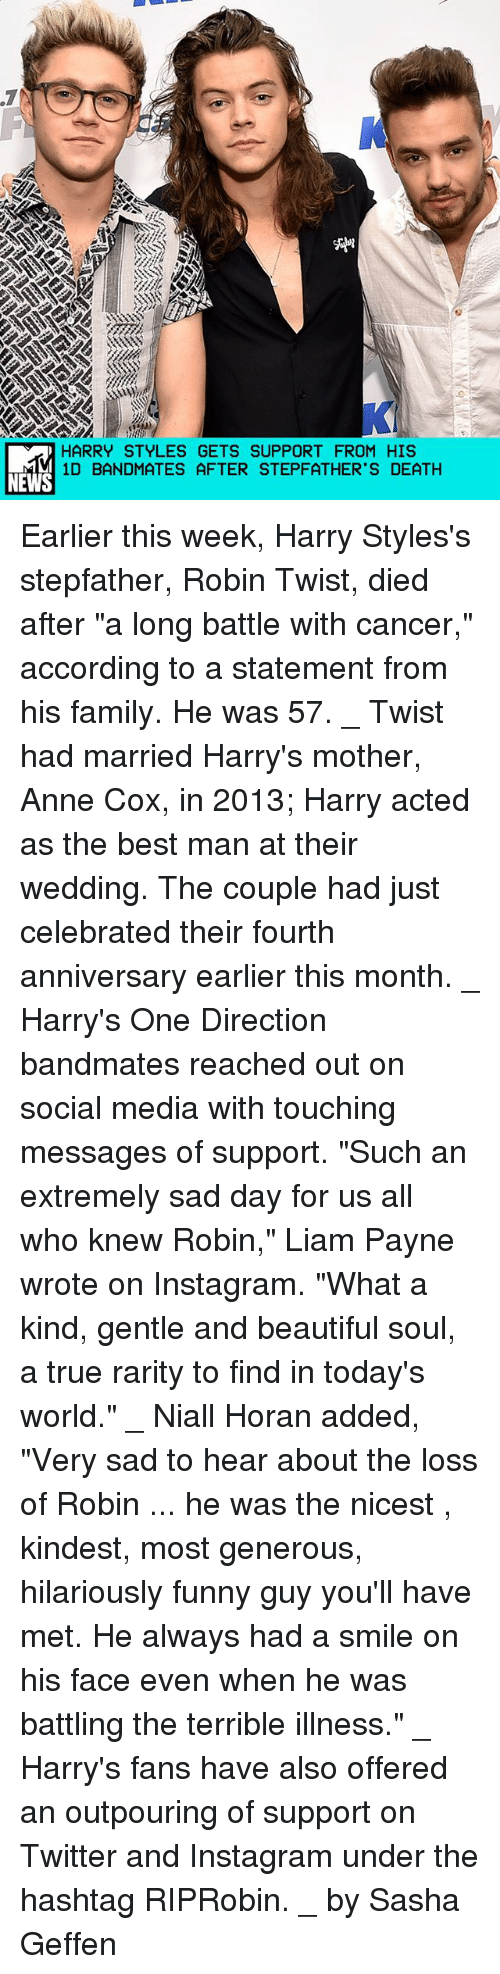 "Beautiful, Family, and Funny: HARRY STYLES GETS SUPPORT FROM HIS  11D BANDMATES AFTER STEPFATHR 'S DEATH  MS  E  FH  TA  0P  PE  PT  US  SE  TT  EF  GA  SS  EE  LT  YA  TM  -SD  YA  RB  AD Earlier this week, Harry Styles's stepfather, Robin Twist, died after ""a long battle with cancer,"" according to a statement from his family. He was 57. _ Twist had married Harry's mother, Anne Cox, in 2013; Harry acted as the best man at their wedding. The couple had just celebrated their fourth anniversary earlier this month. _ Harry's One Direction bandmates reached out on social media with touching messages of support. ""Such an extremely sad day for us all who knew Robin,"" Liam Payne wrote on Instagram. ""What a kind, gentle and beautiful soul, a true rarity to find in today's world."" _ Niall Horan added, ""Very sad to hear about the loss of Robin ... he was the nicest , kindest, most generous, hilariously funny guy you'll have met. He always had a smile on his face even when he was battling the terrible illness."" _ Harry's fans have also offered an outpouring of support on Twitter and Instagram under the hashtag RIPRobin. _ by Sasha Geffen"